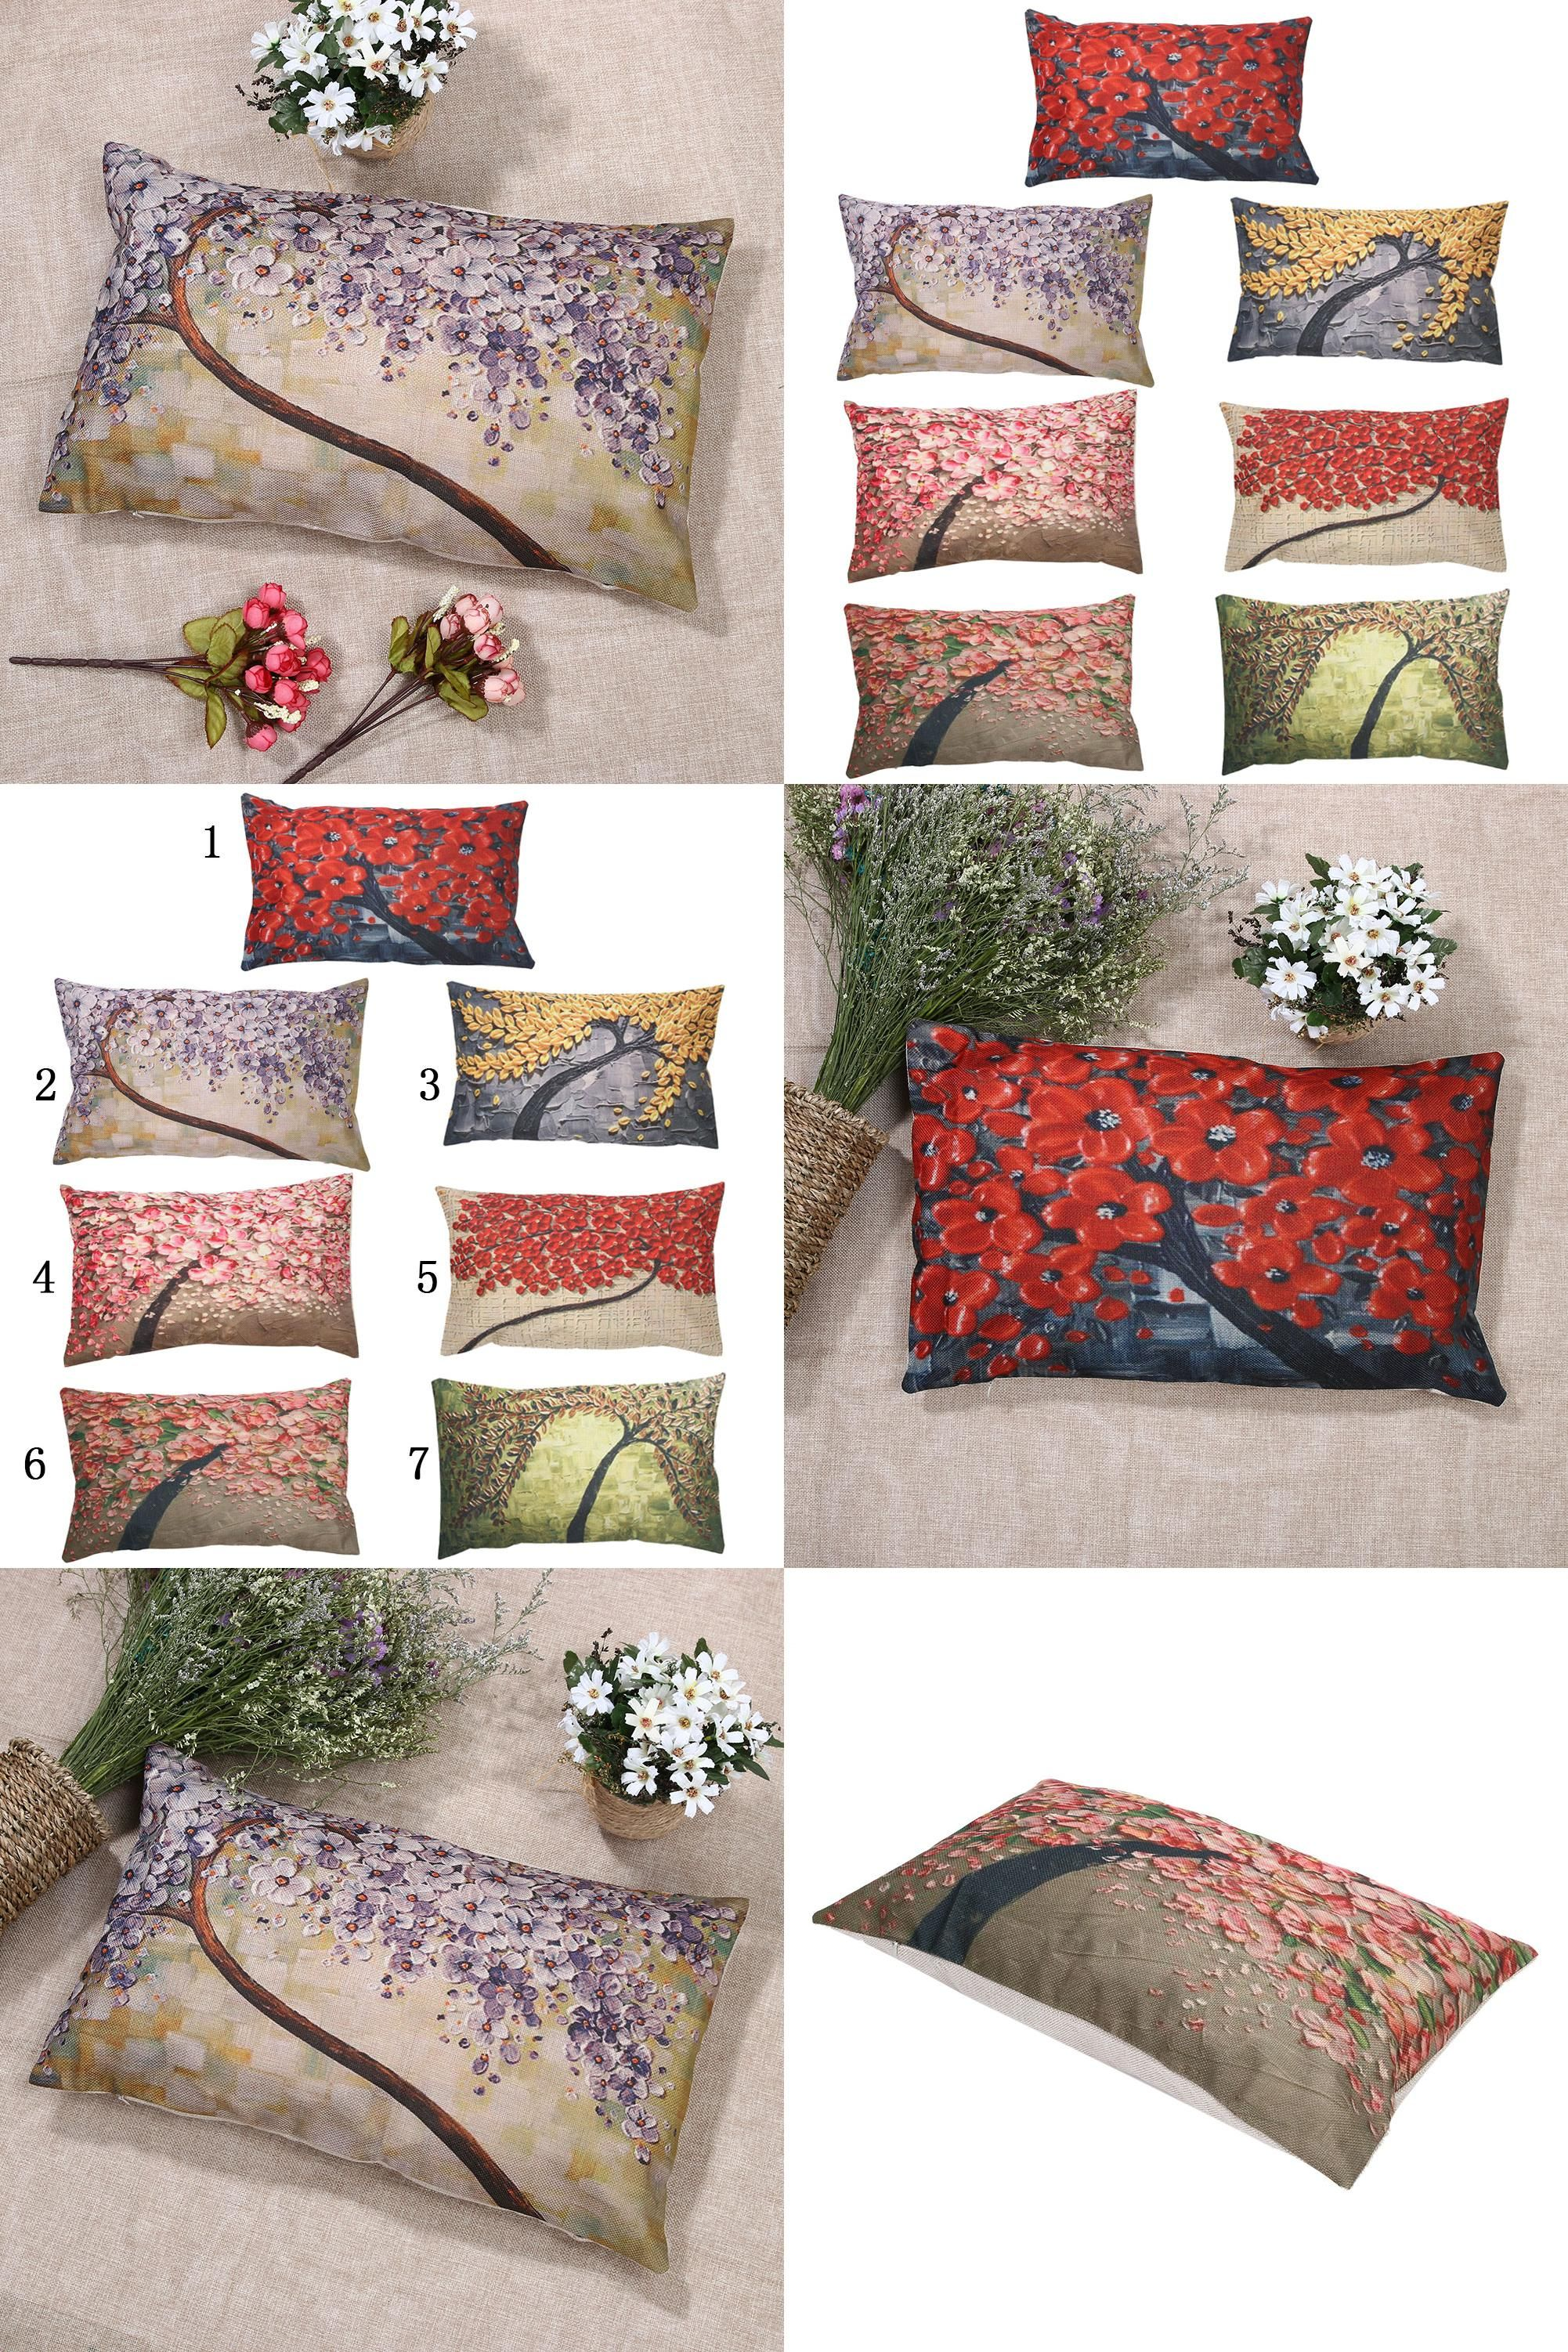 Visit to Buy] Luxury Flower Tree Print Cushion Cover Pillowcase